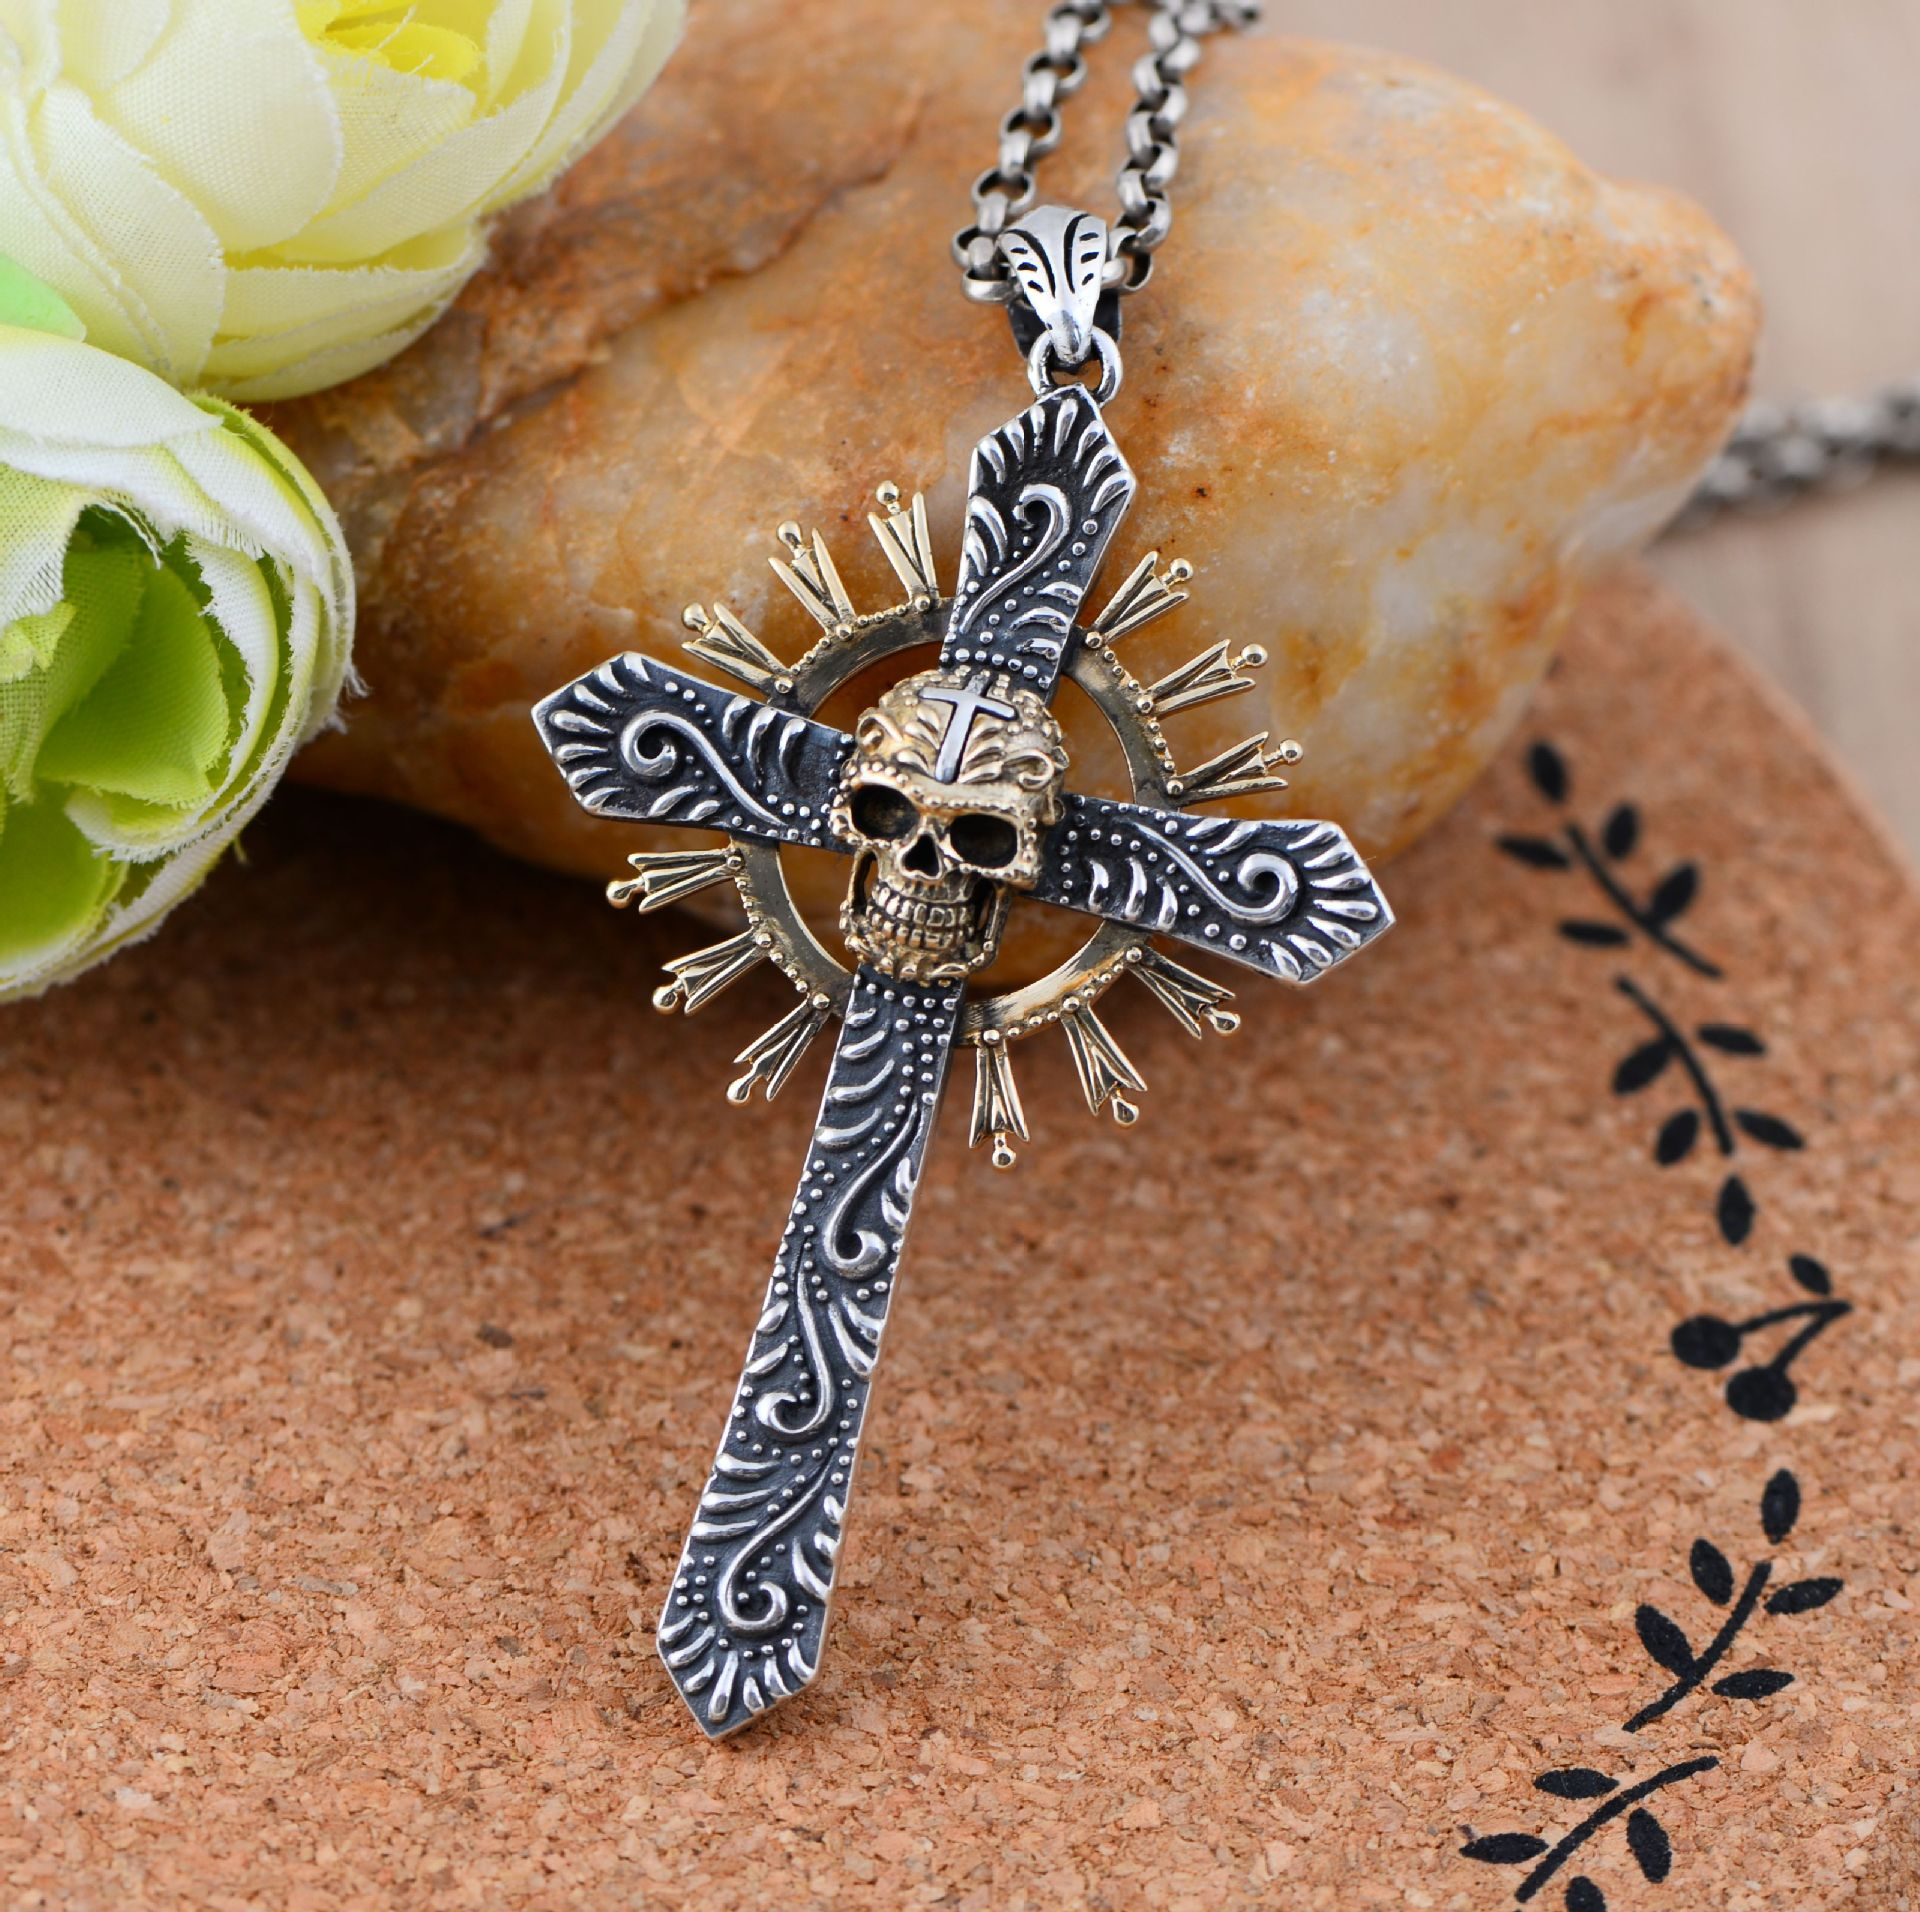 Black silver jewelry wholesale 925 Sterling Silver Thailand import Cross Skull Pendant 046730w men's personality 3eb10047 2c